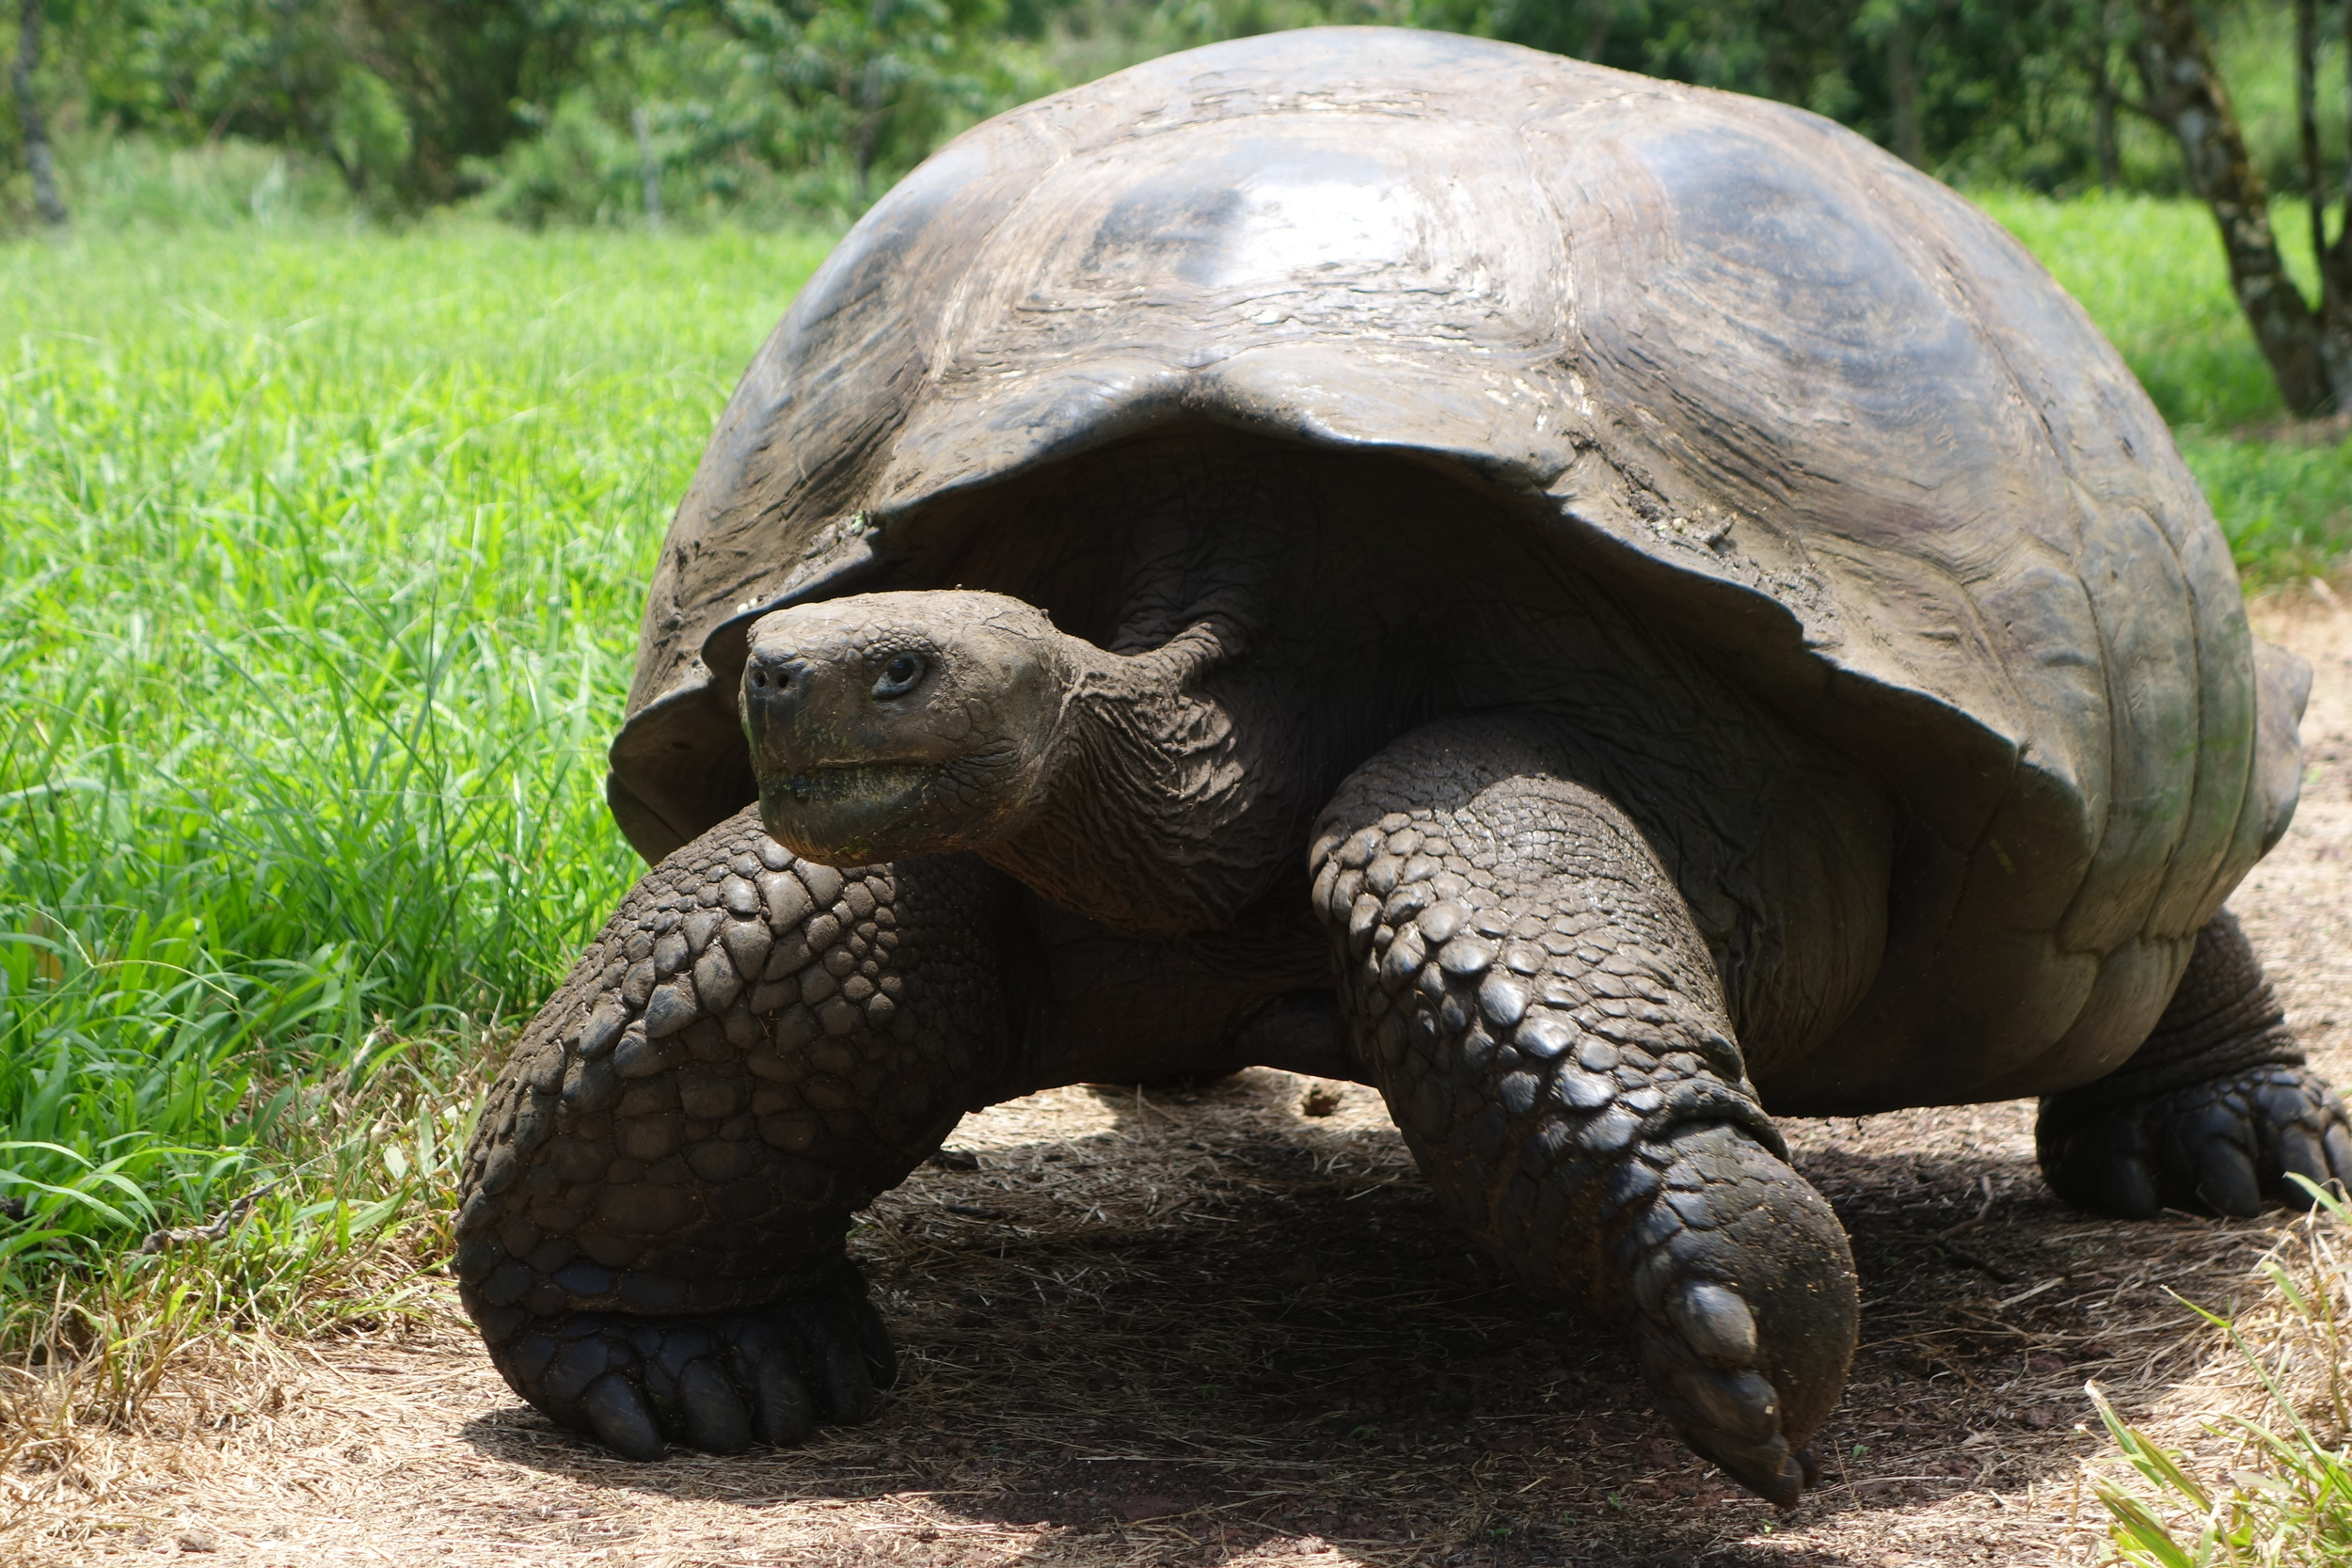 ride andes horse treks galapagos tortuga tortoise